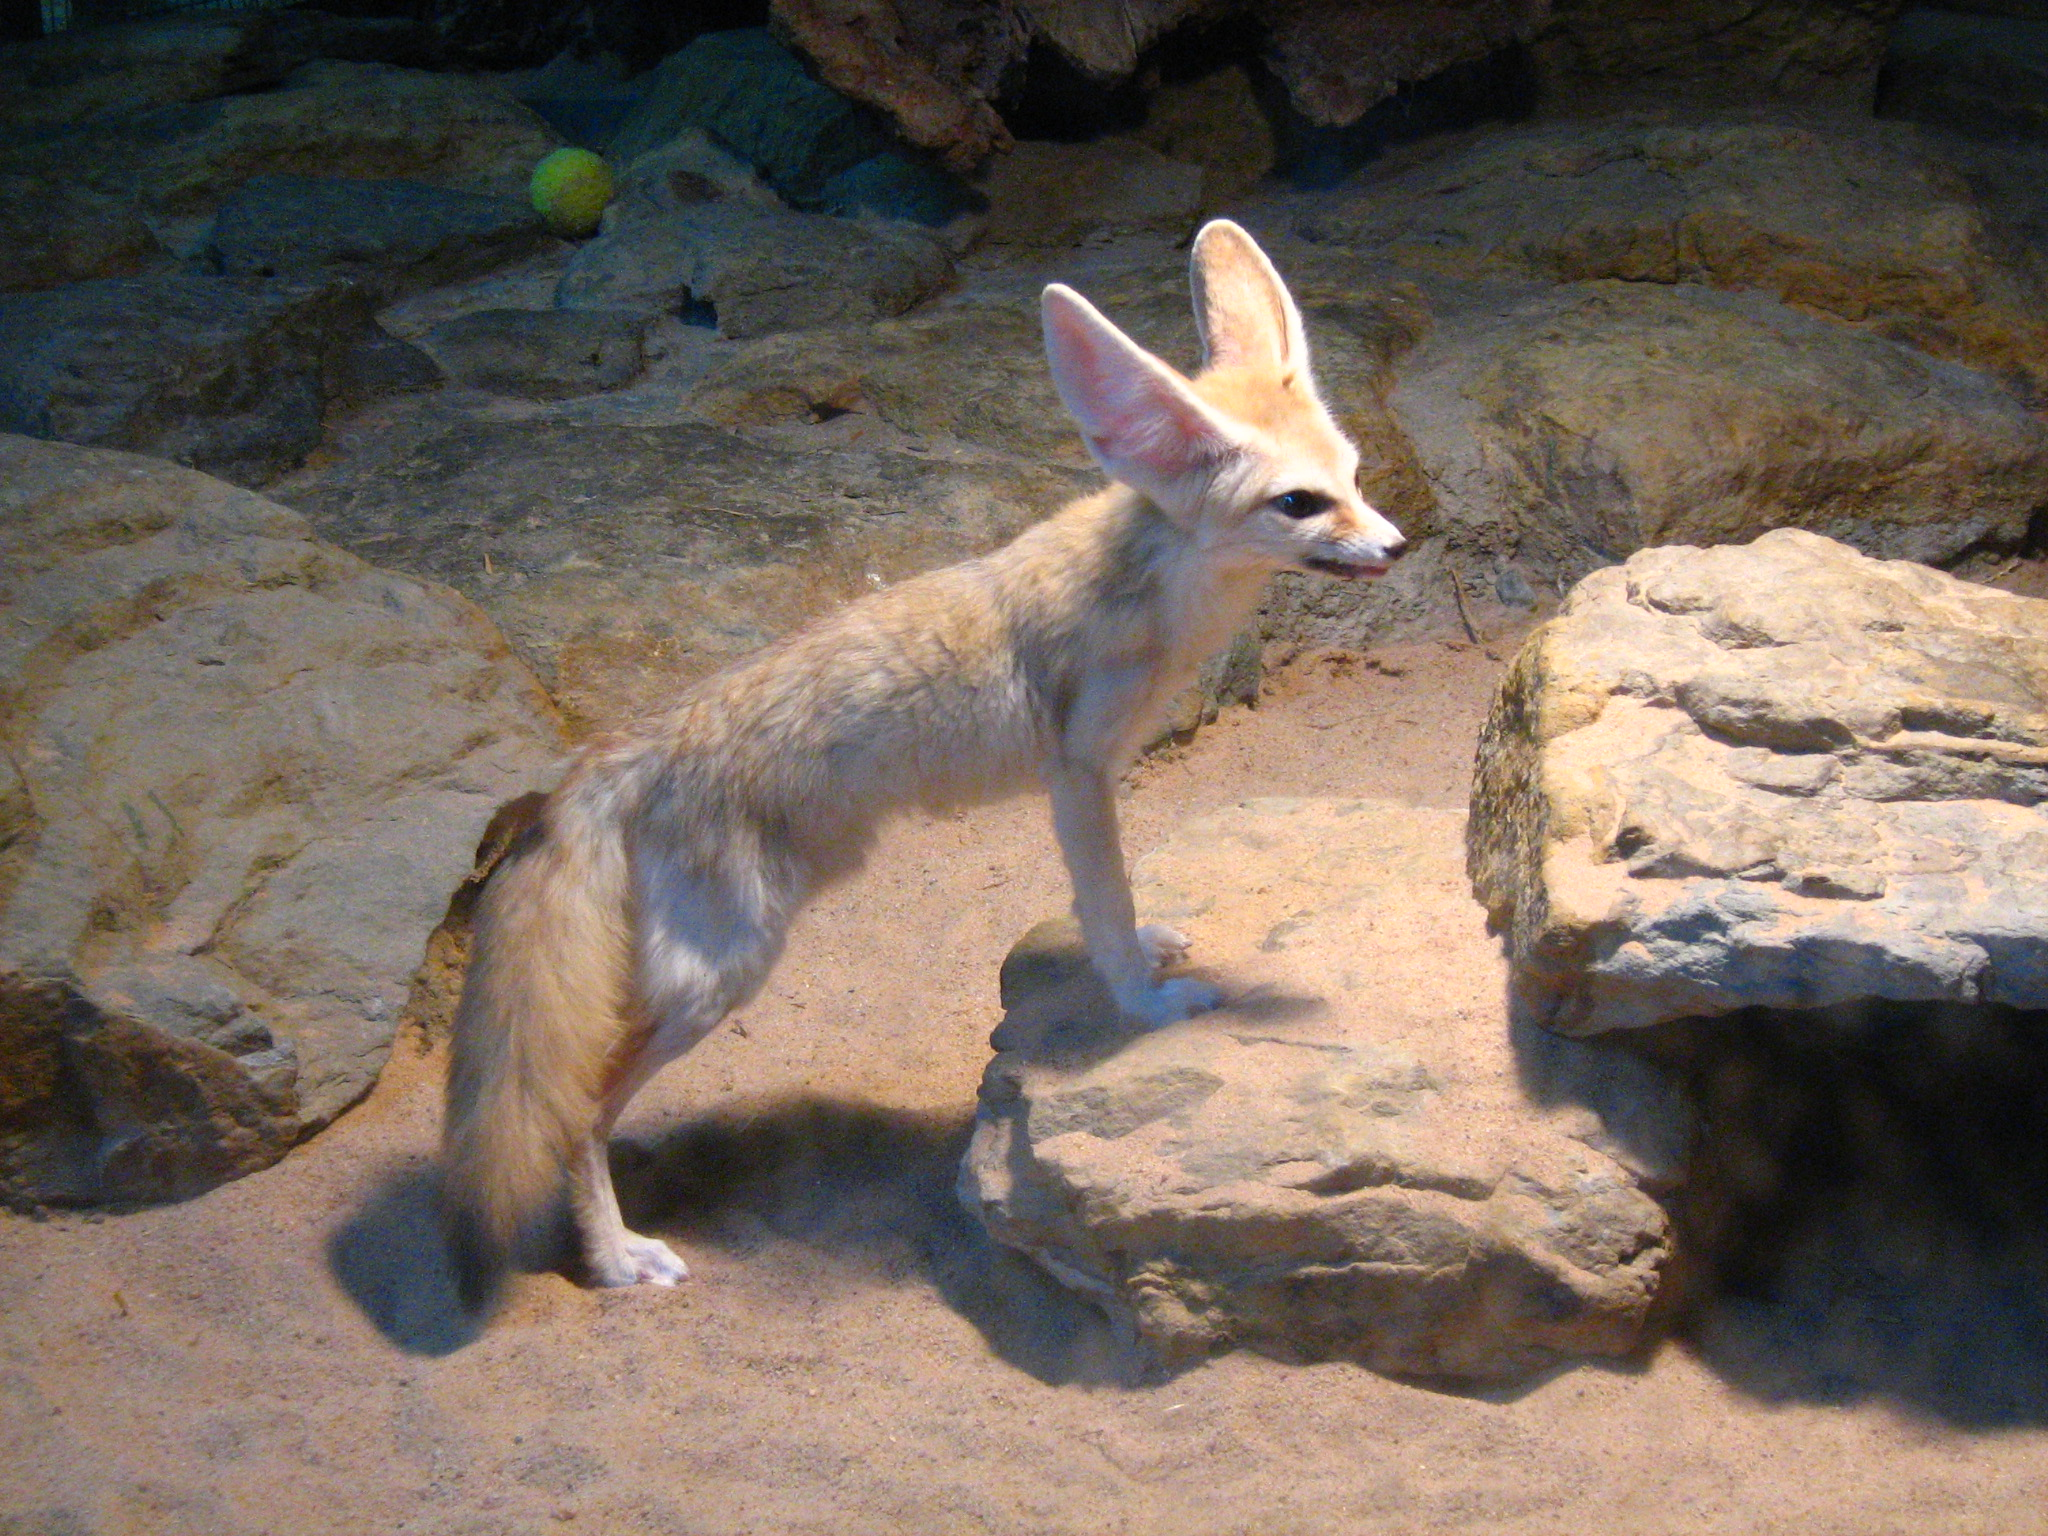 https://upload.wikimedia.org/wikipedia/commons/9/90/Fennec_Fox_%28Vulpes_zerda%29_Wilhelma_Zoo-8.jpg